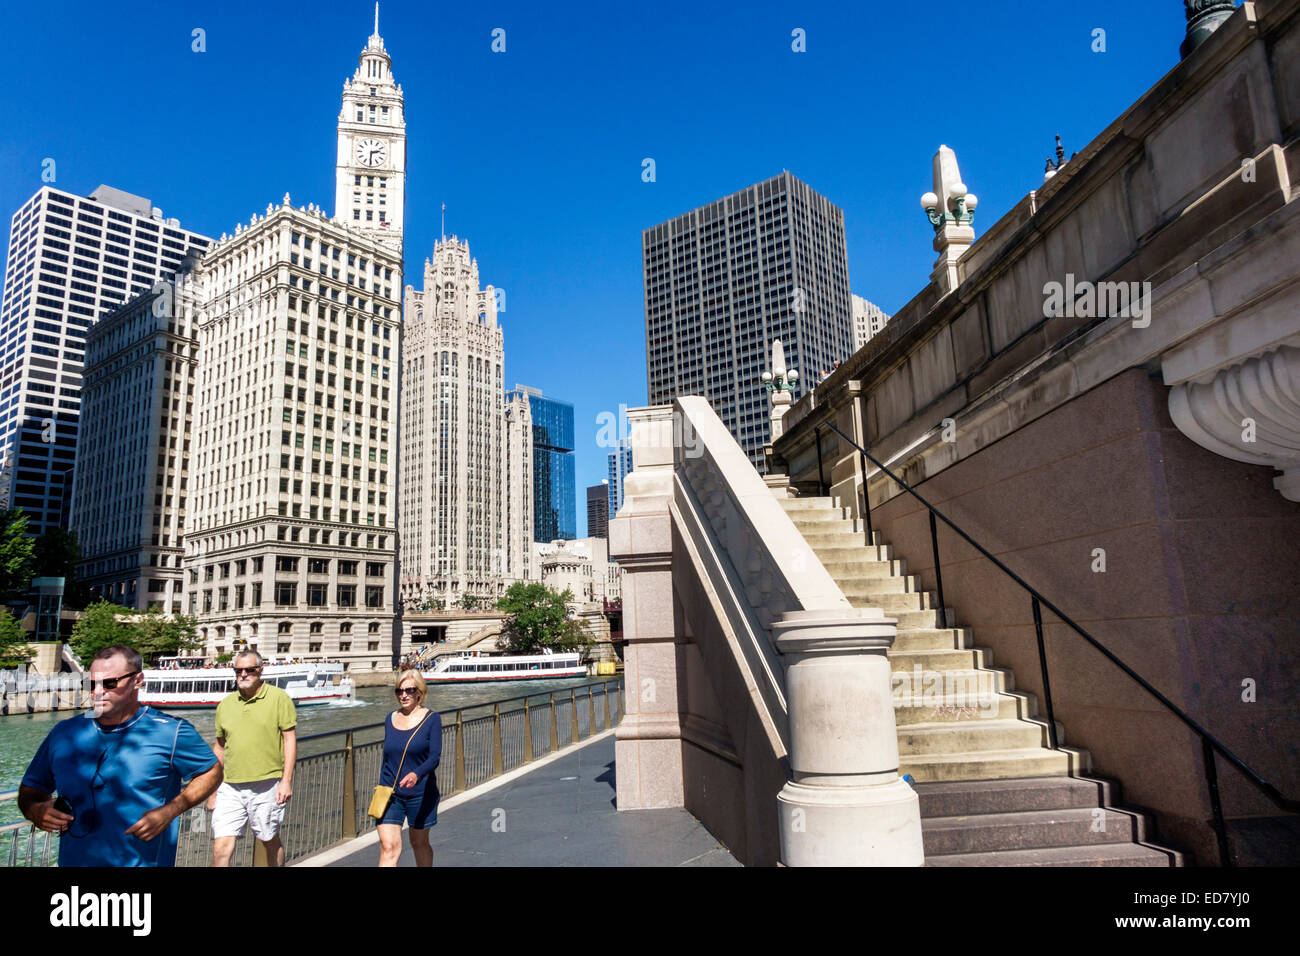 Chicago Illinois Chicago River downtown Wrigley Building city skyline skyscrapers Riverwalk residents walking - Stock Image